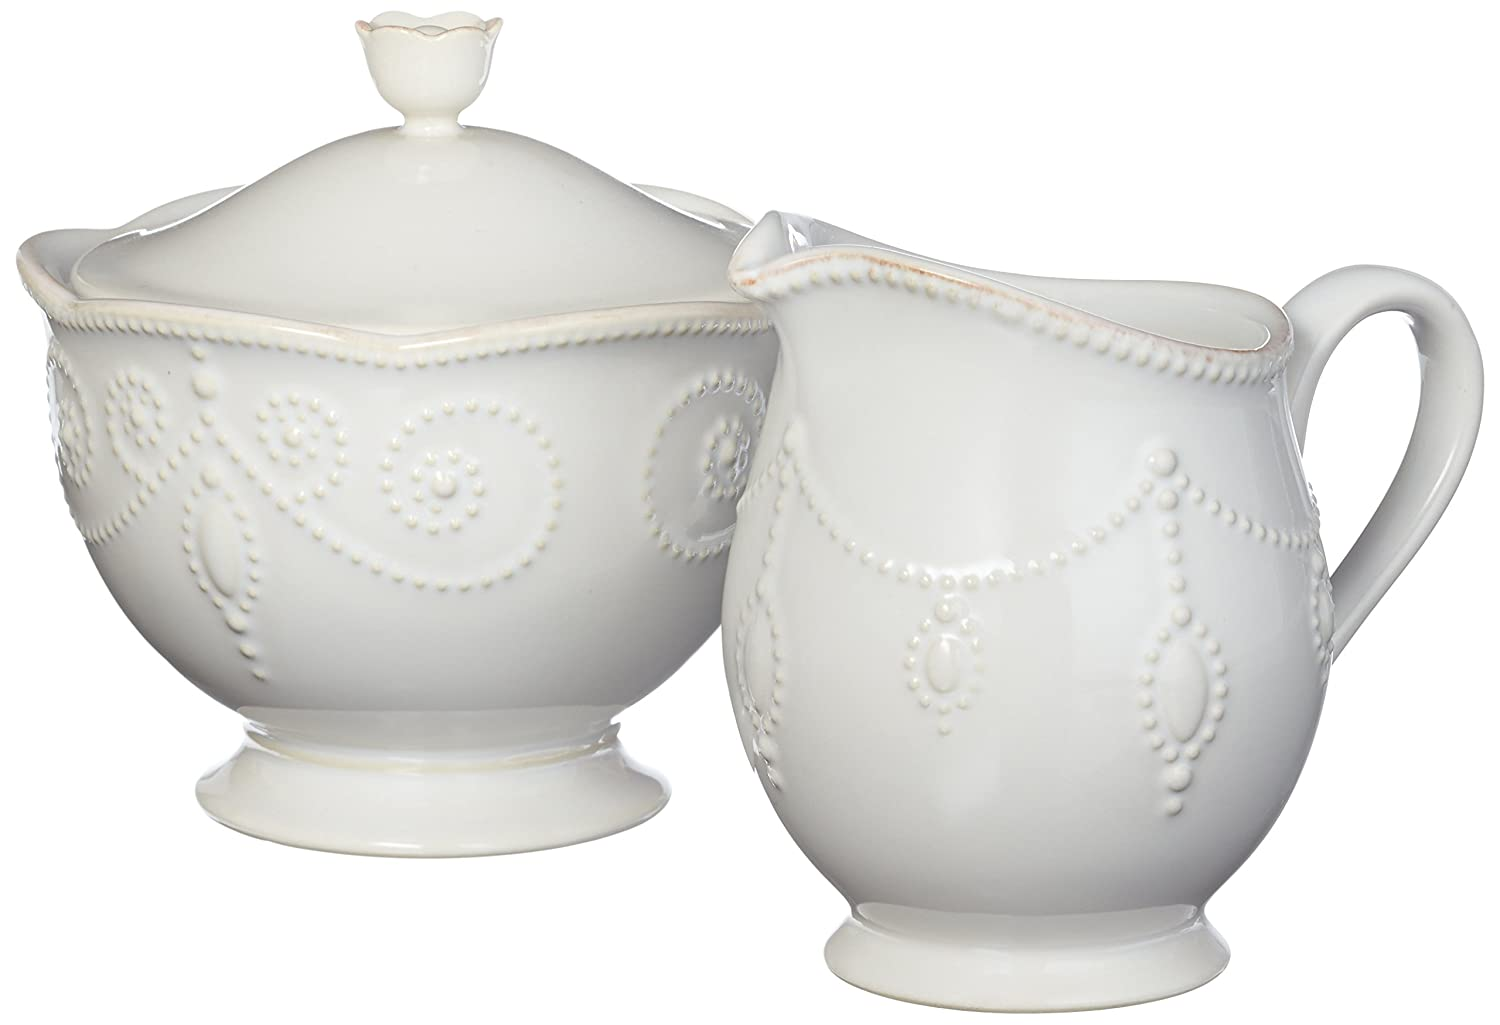 Christmas Tablescape Décor - Lenox white French perle sugar and creamer set